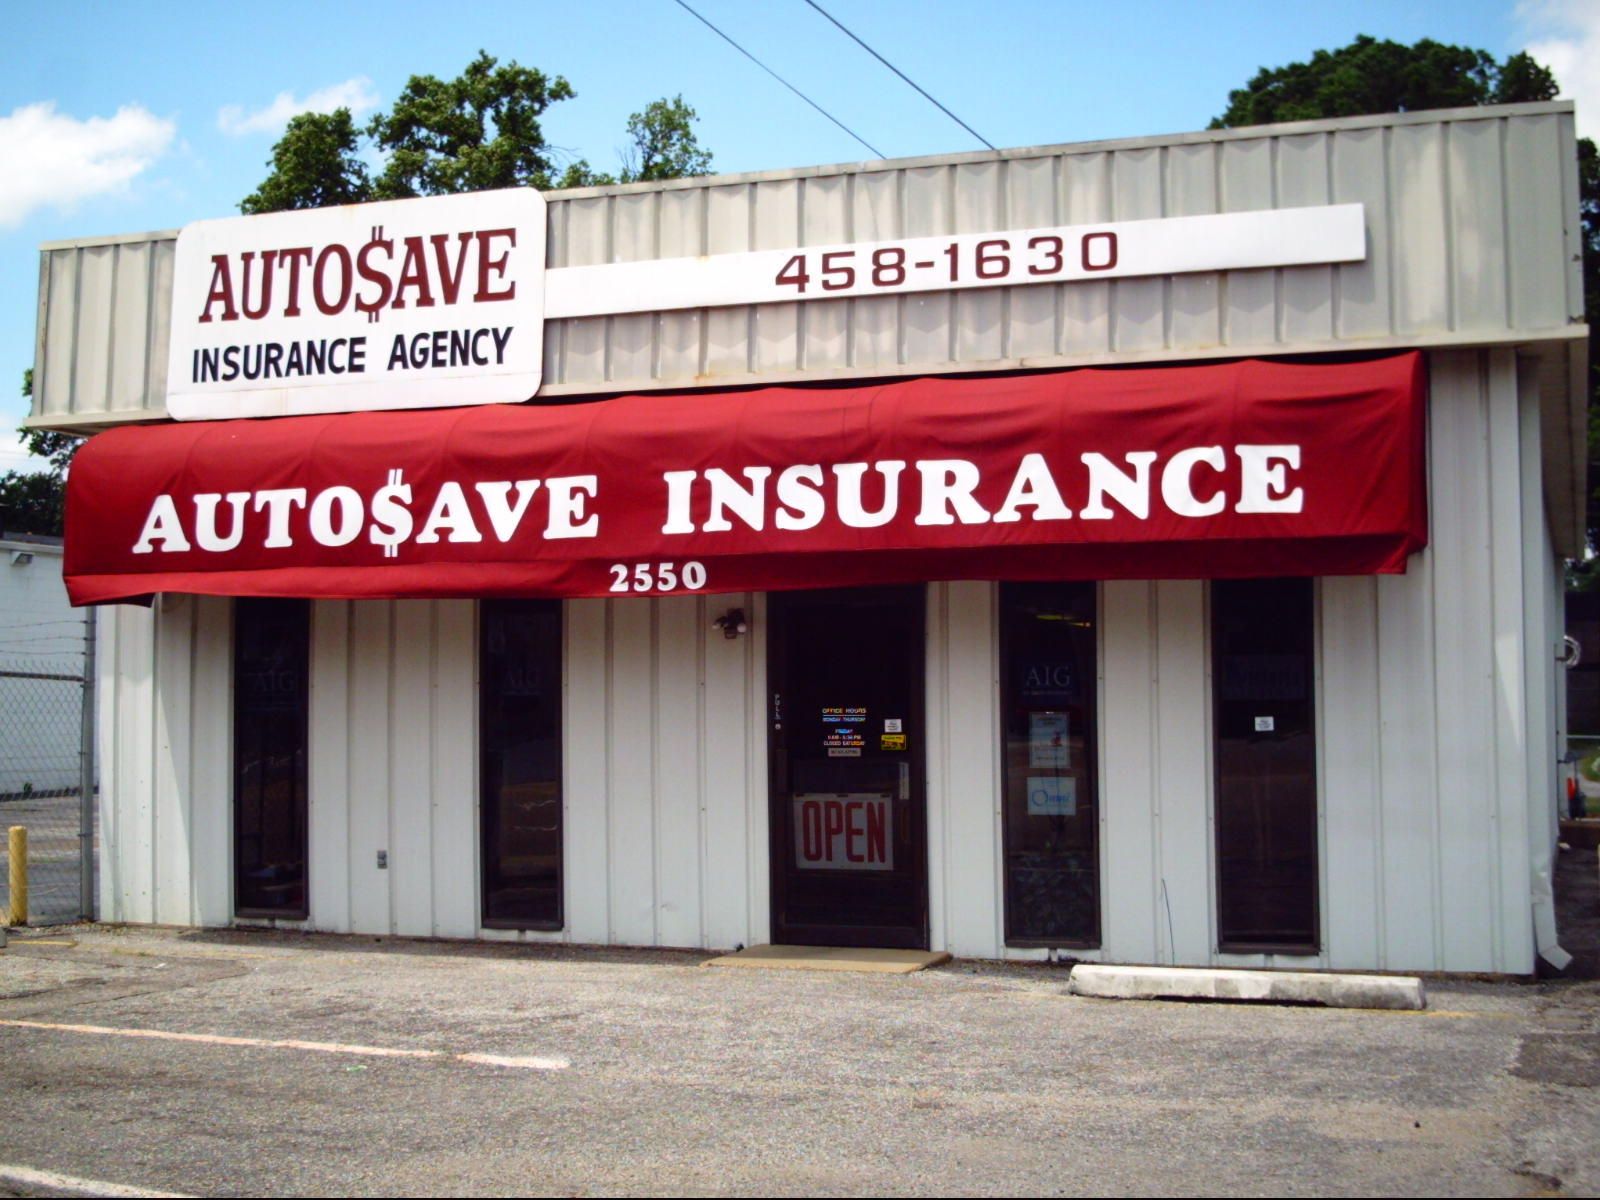 AutoSave Insurance Agency image 3